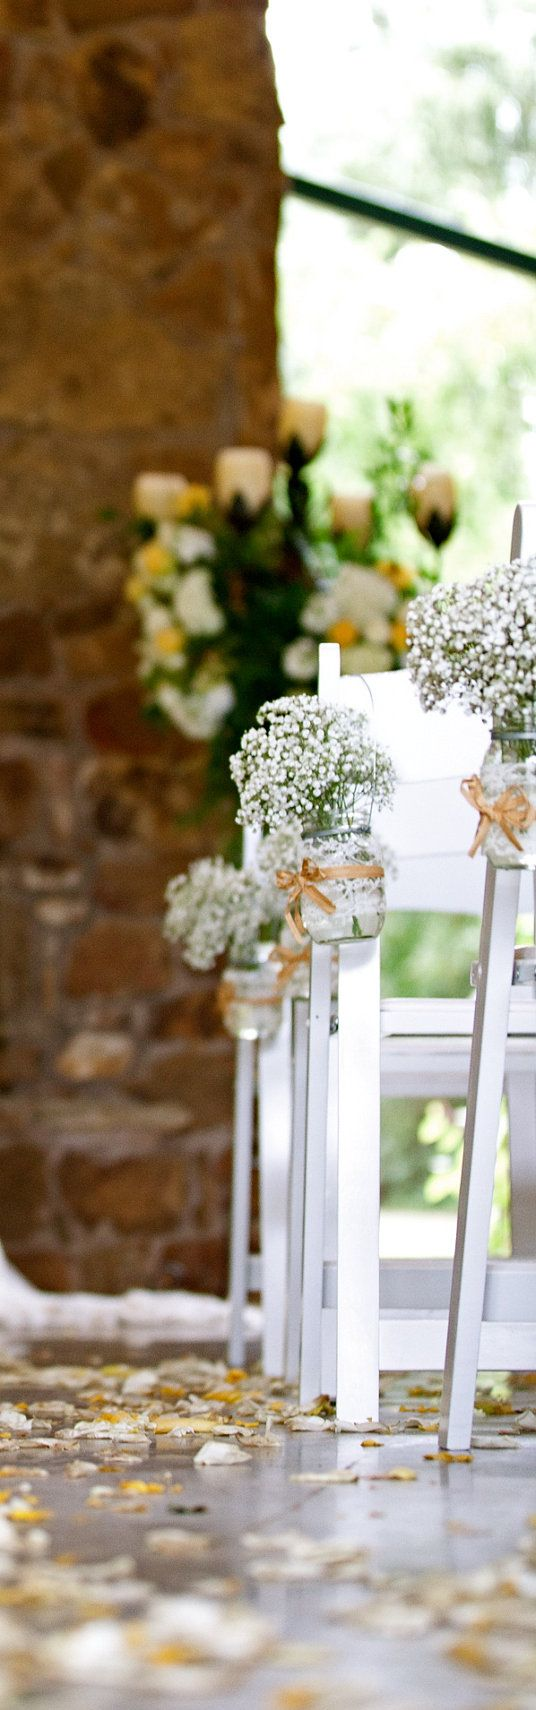 Set of vintage inspired mason jar vases for wedding ceremony